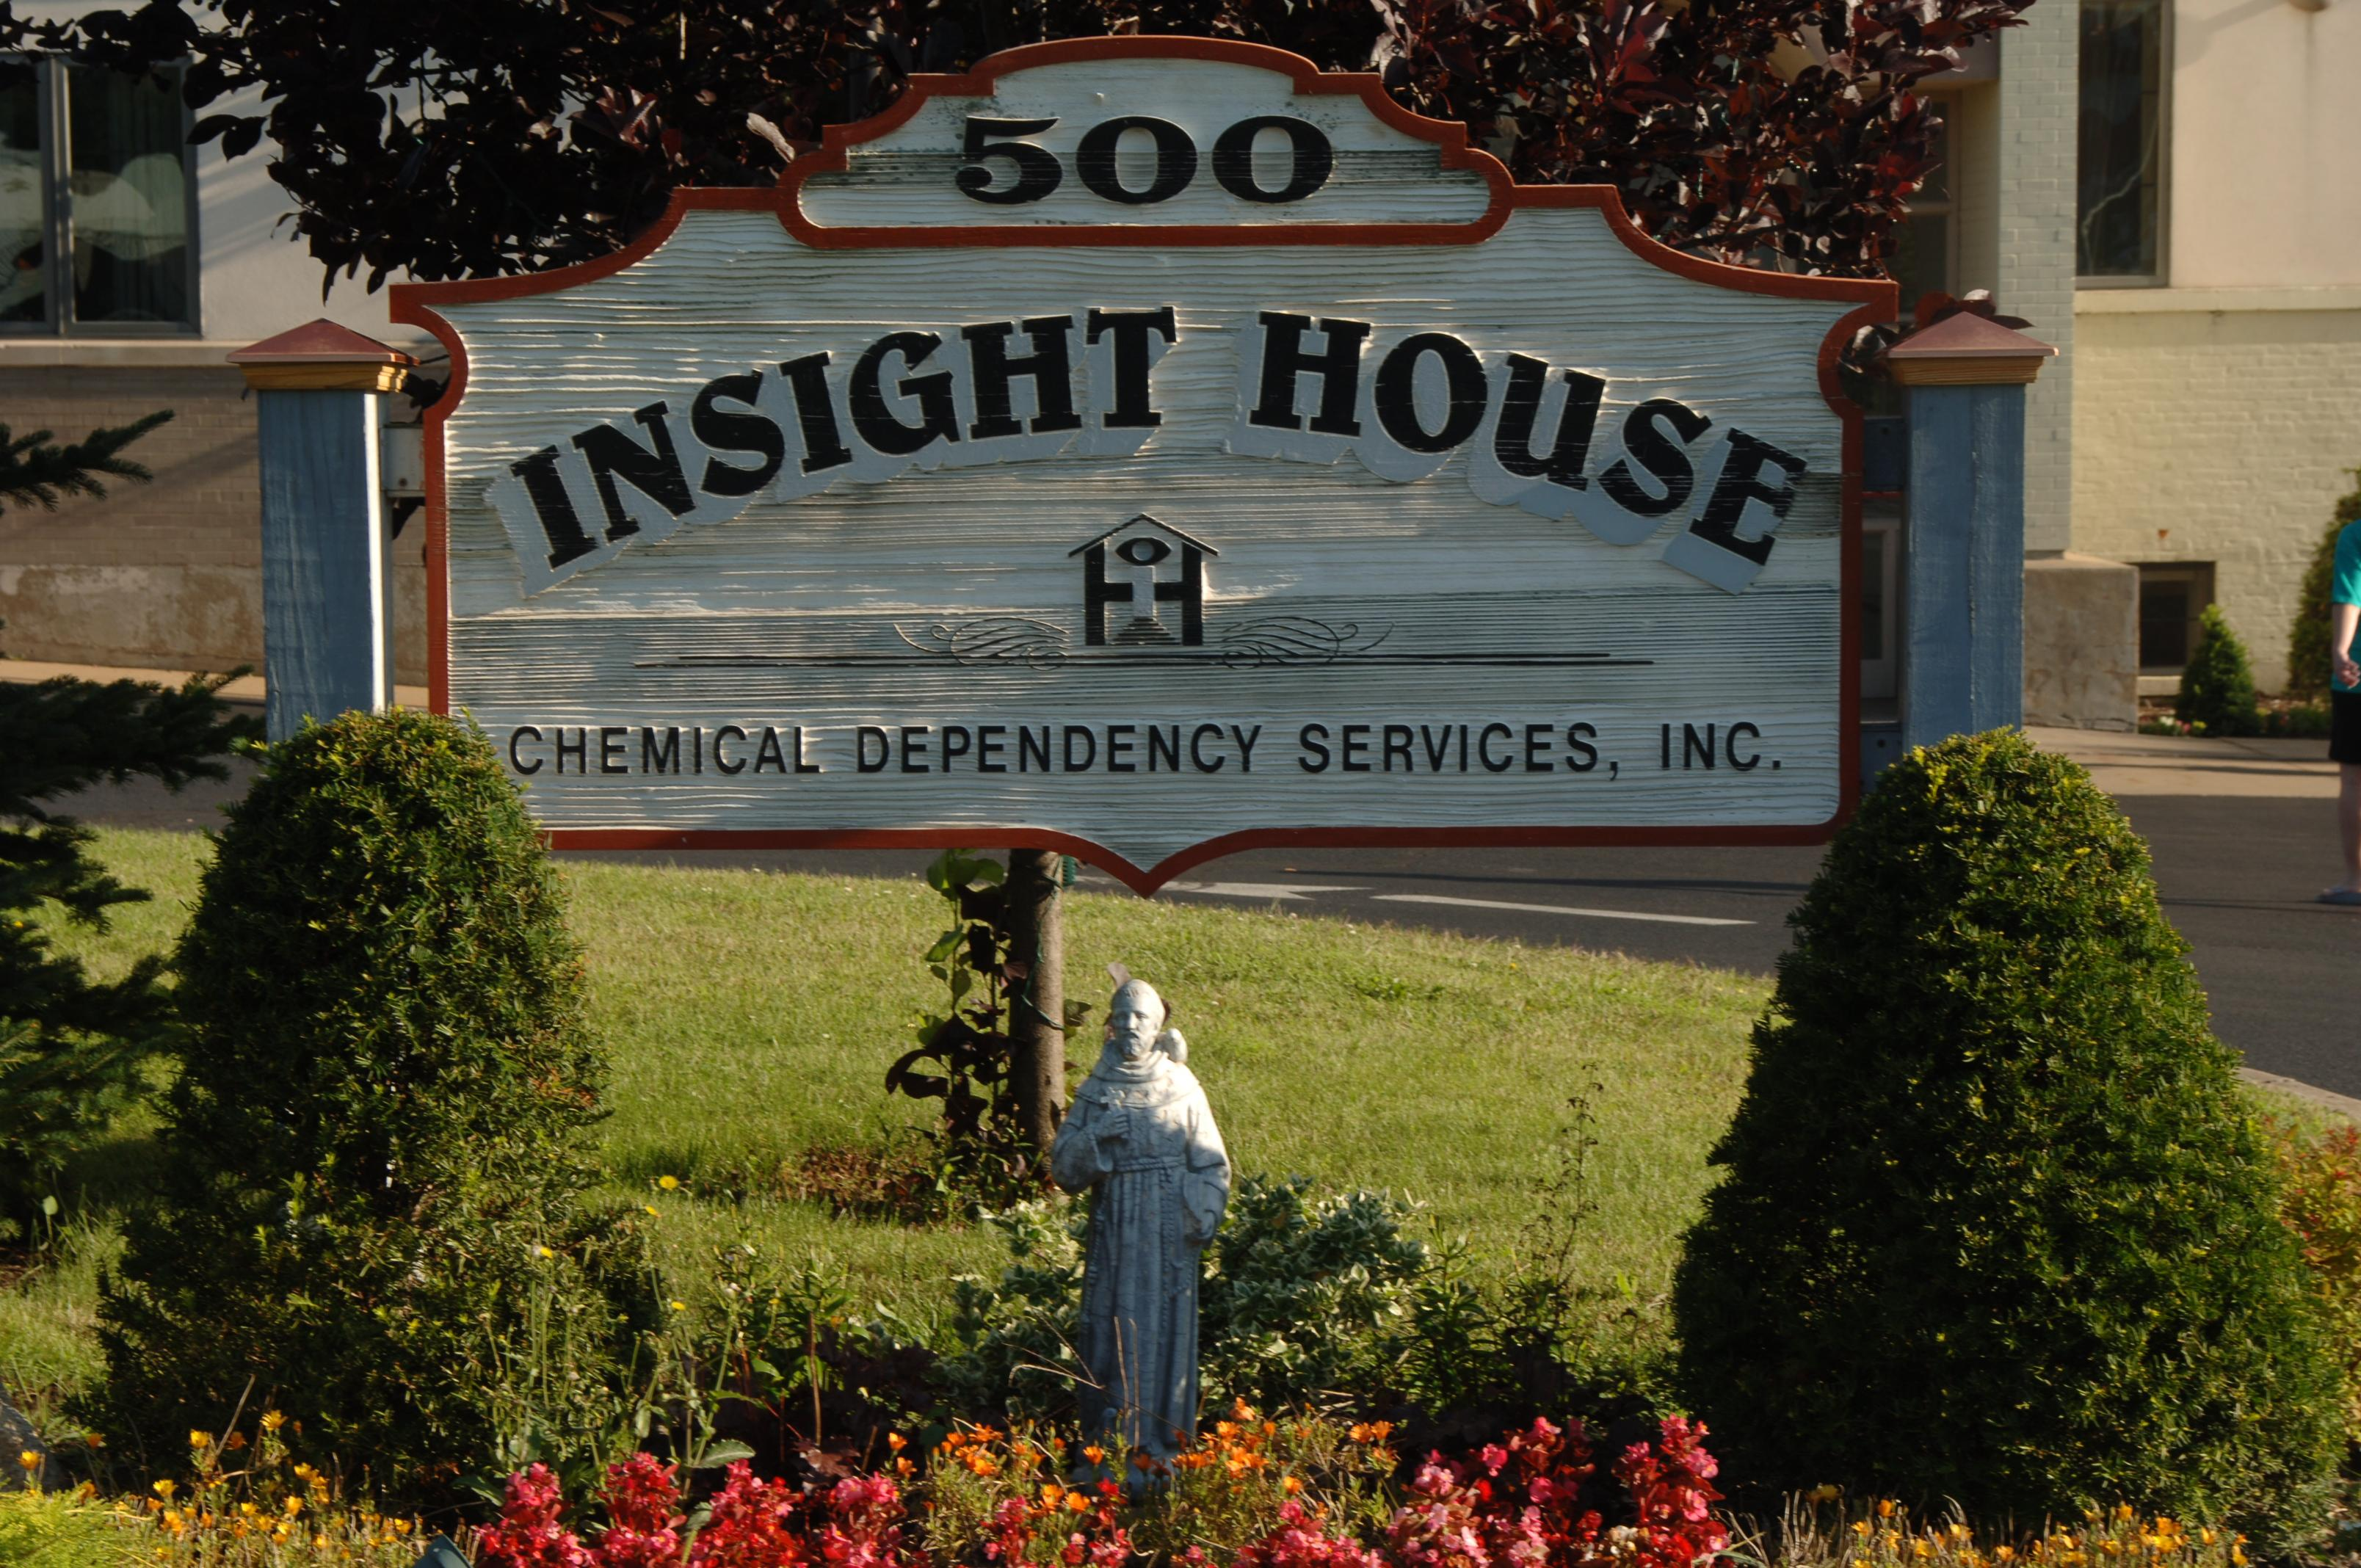 Insight House Chemical Dependency Services Utica New York